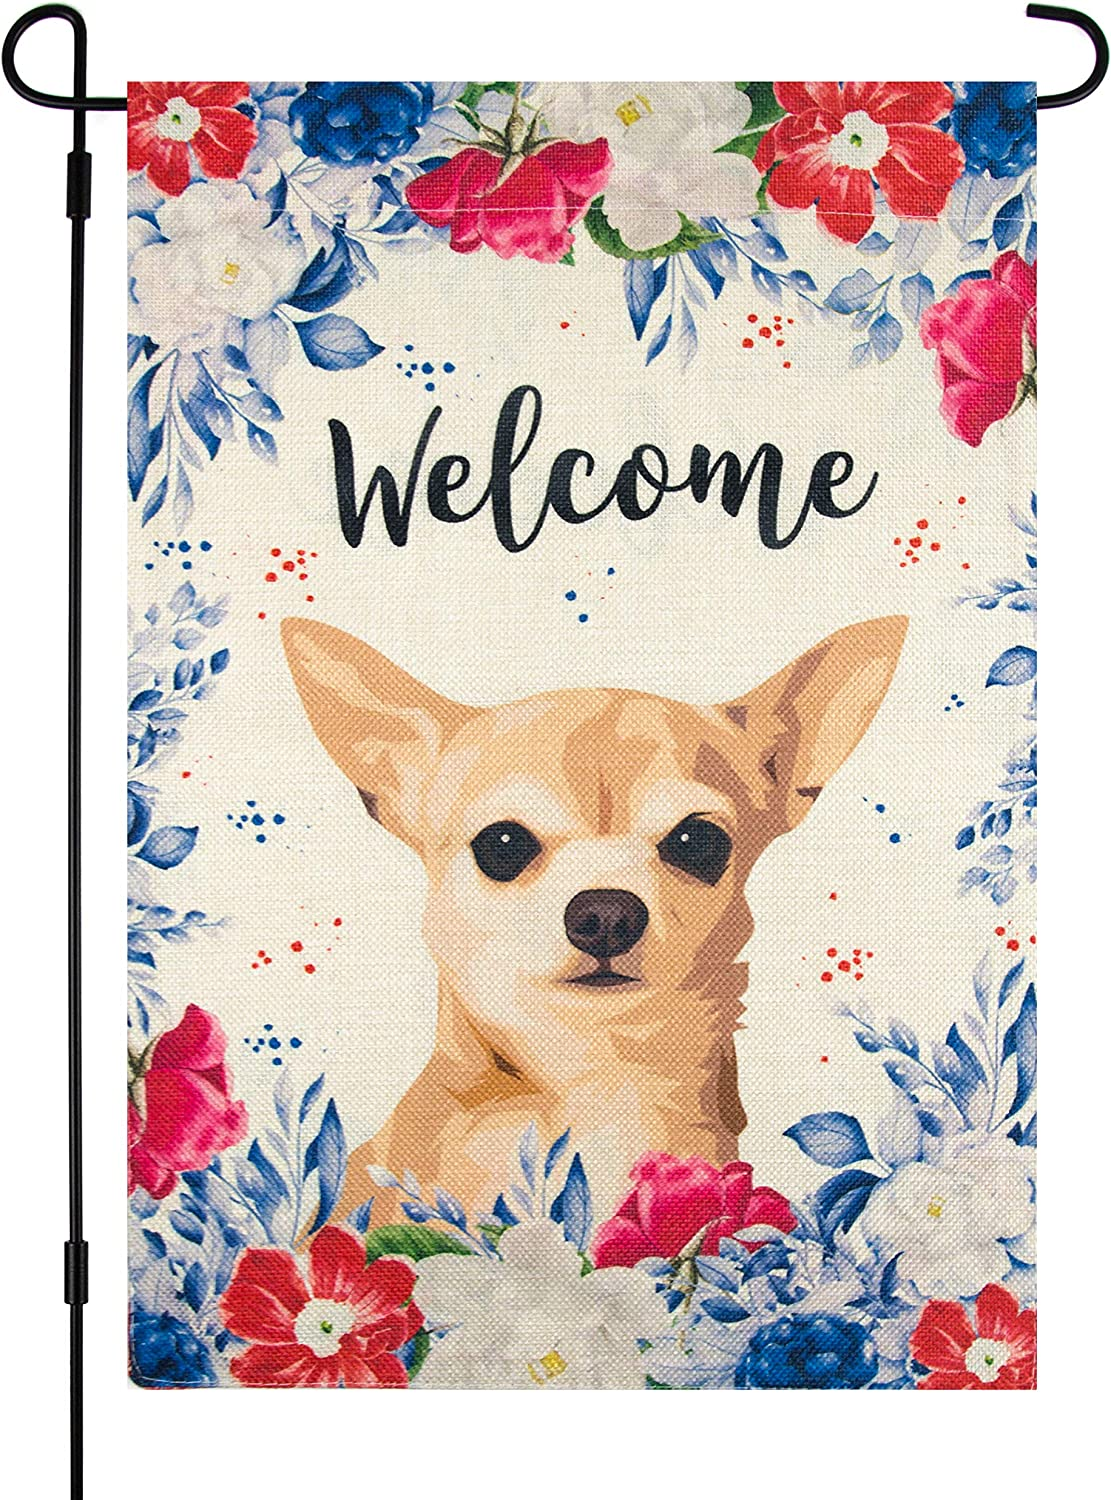 Garden Flag with Chihuahua Dog, 12 x 18 Inch, Welcome Summer, Double Sided Burlap, Red White Blue Flowers, Outdoor Decor, American Garden Flag